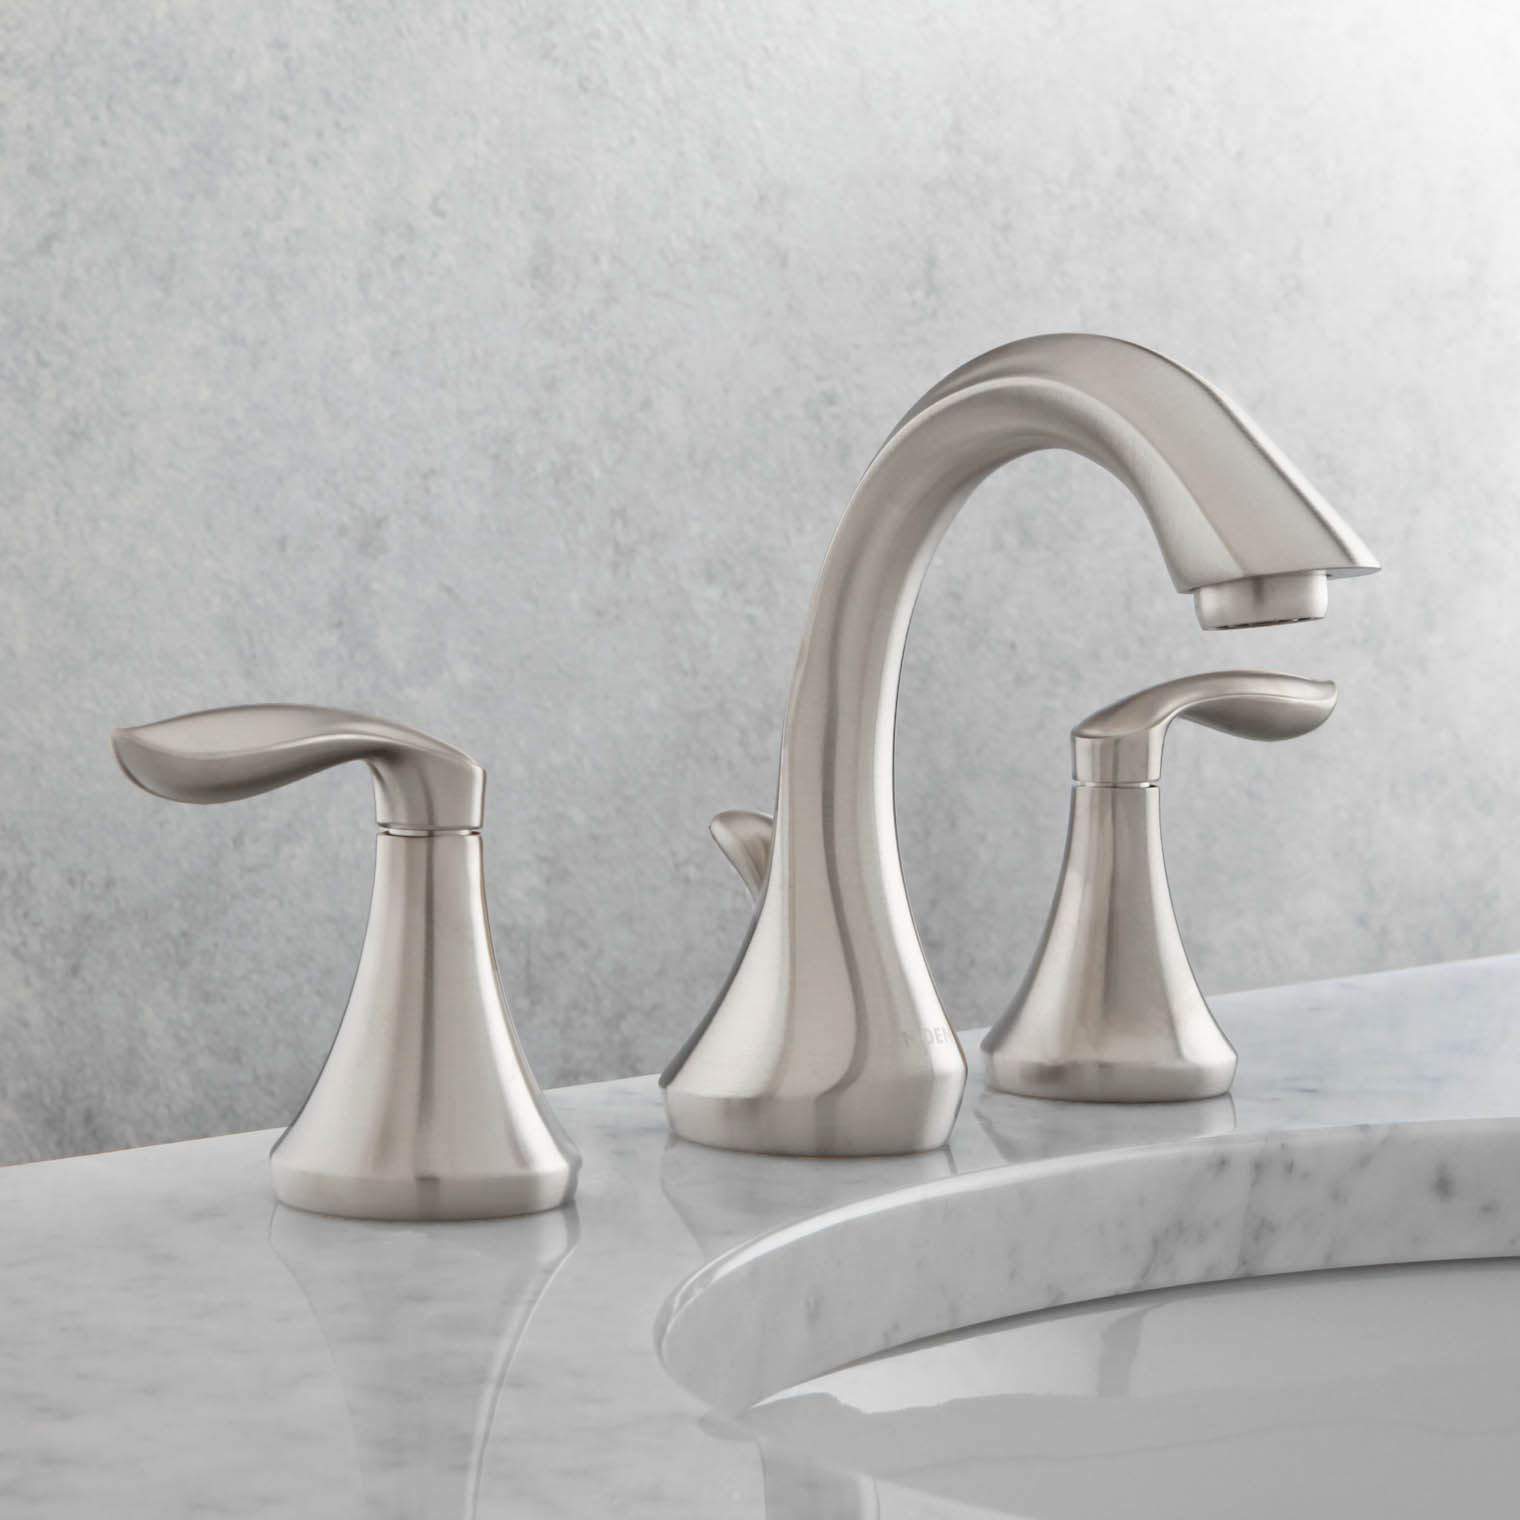 Faucets Moen T6420Bn …  Pinteres… Pleasing Home Depot Moen Bathroom Faucets Design Decoration